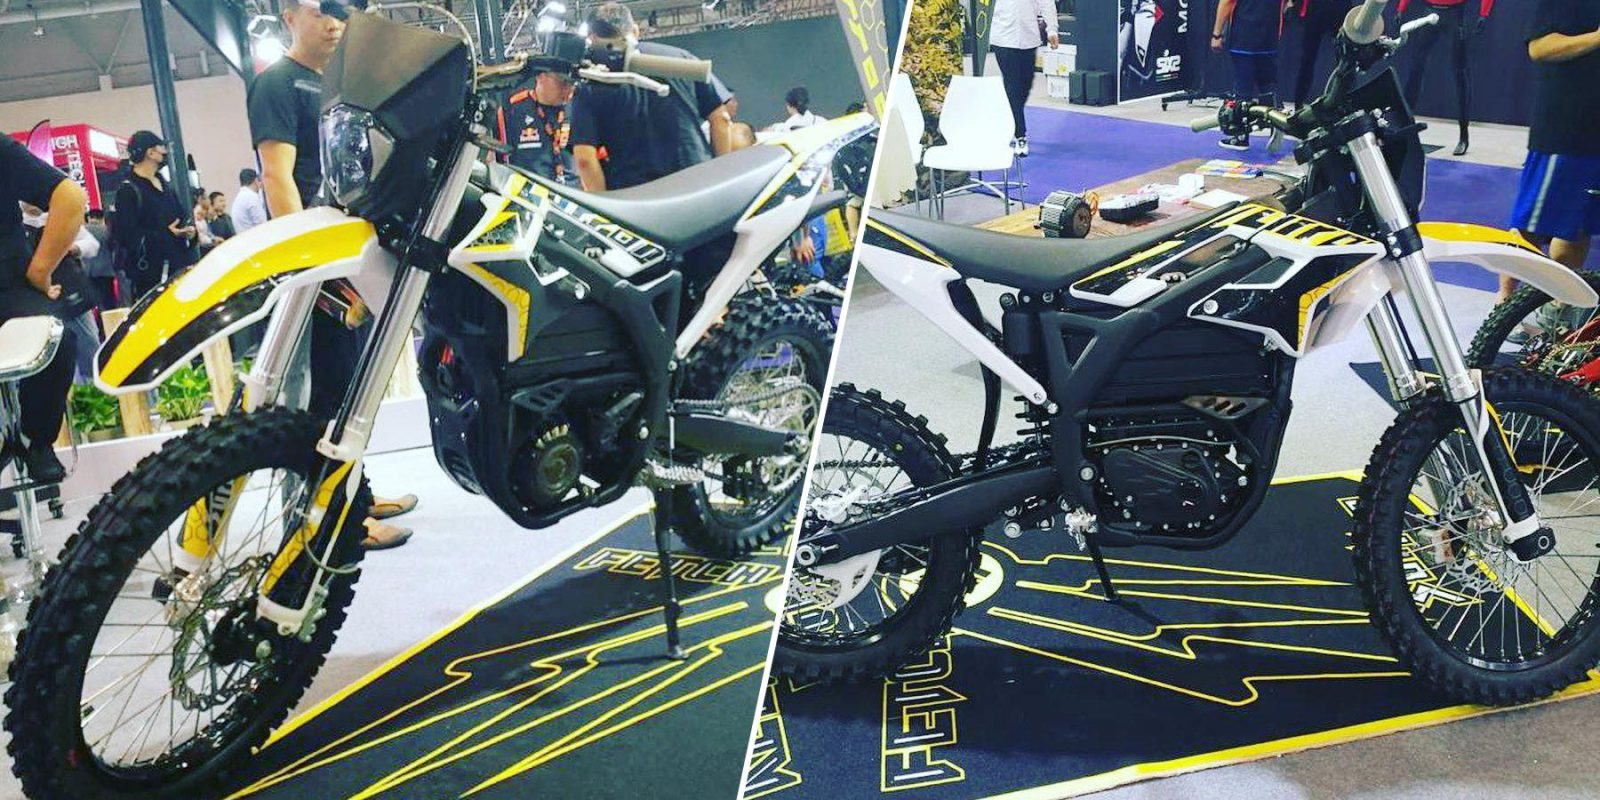 First look: 68 MPH (110 km/h) Sur Ron Storm Bee street-legal electric motorcycle